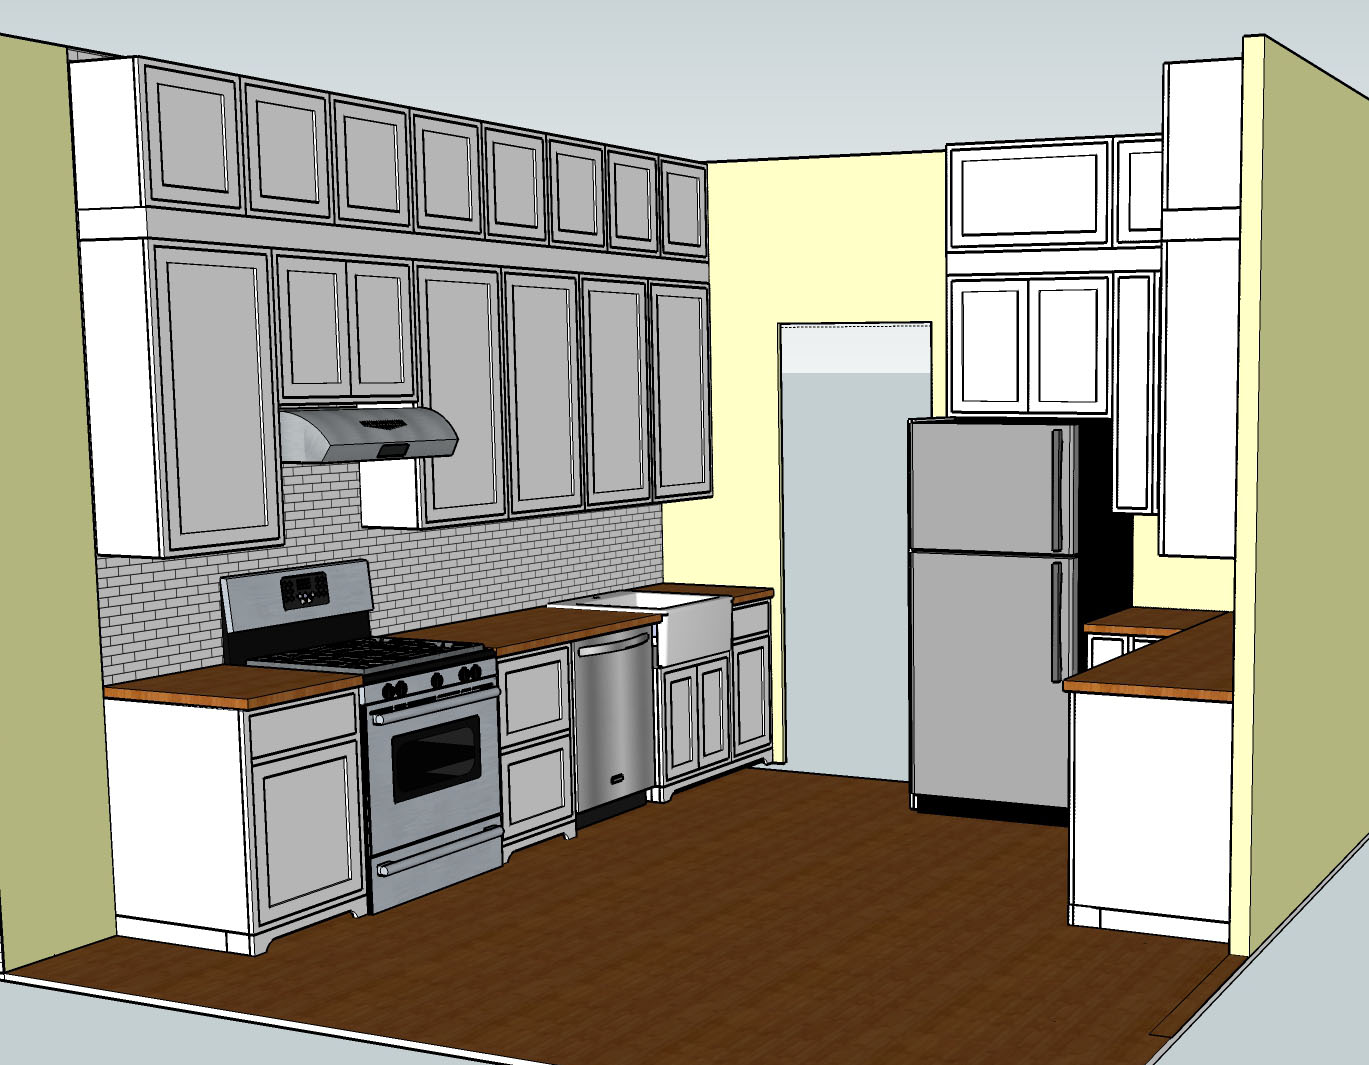 I Finally Have What I Think Is The Final Kitchen Layout. (And Iu0027m Now A Lot  Faster At SketchUp.) Note That The Top Run Of Cabinets And Library Ladder  Rail ...